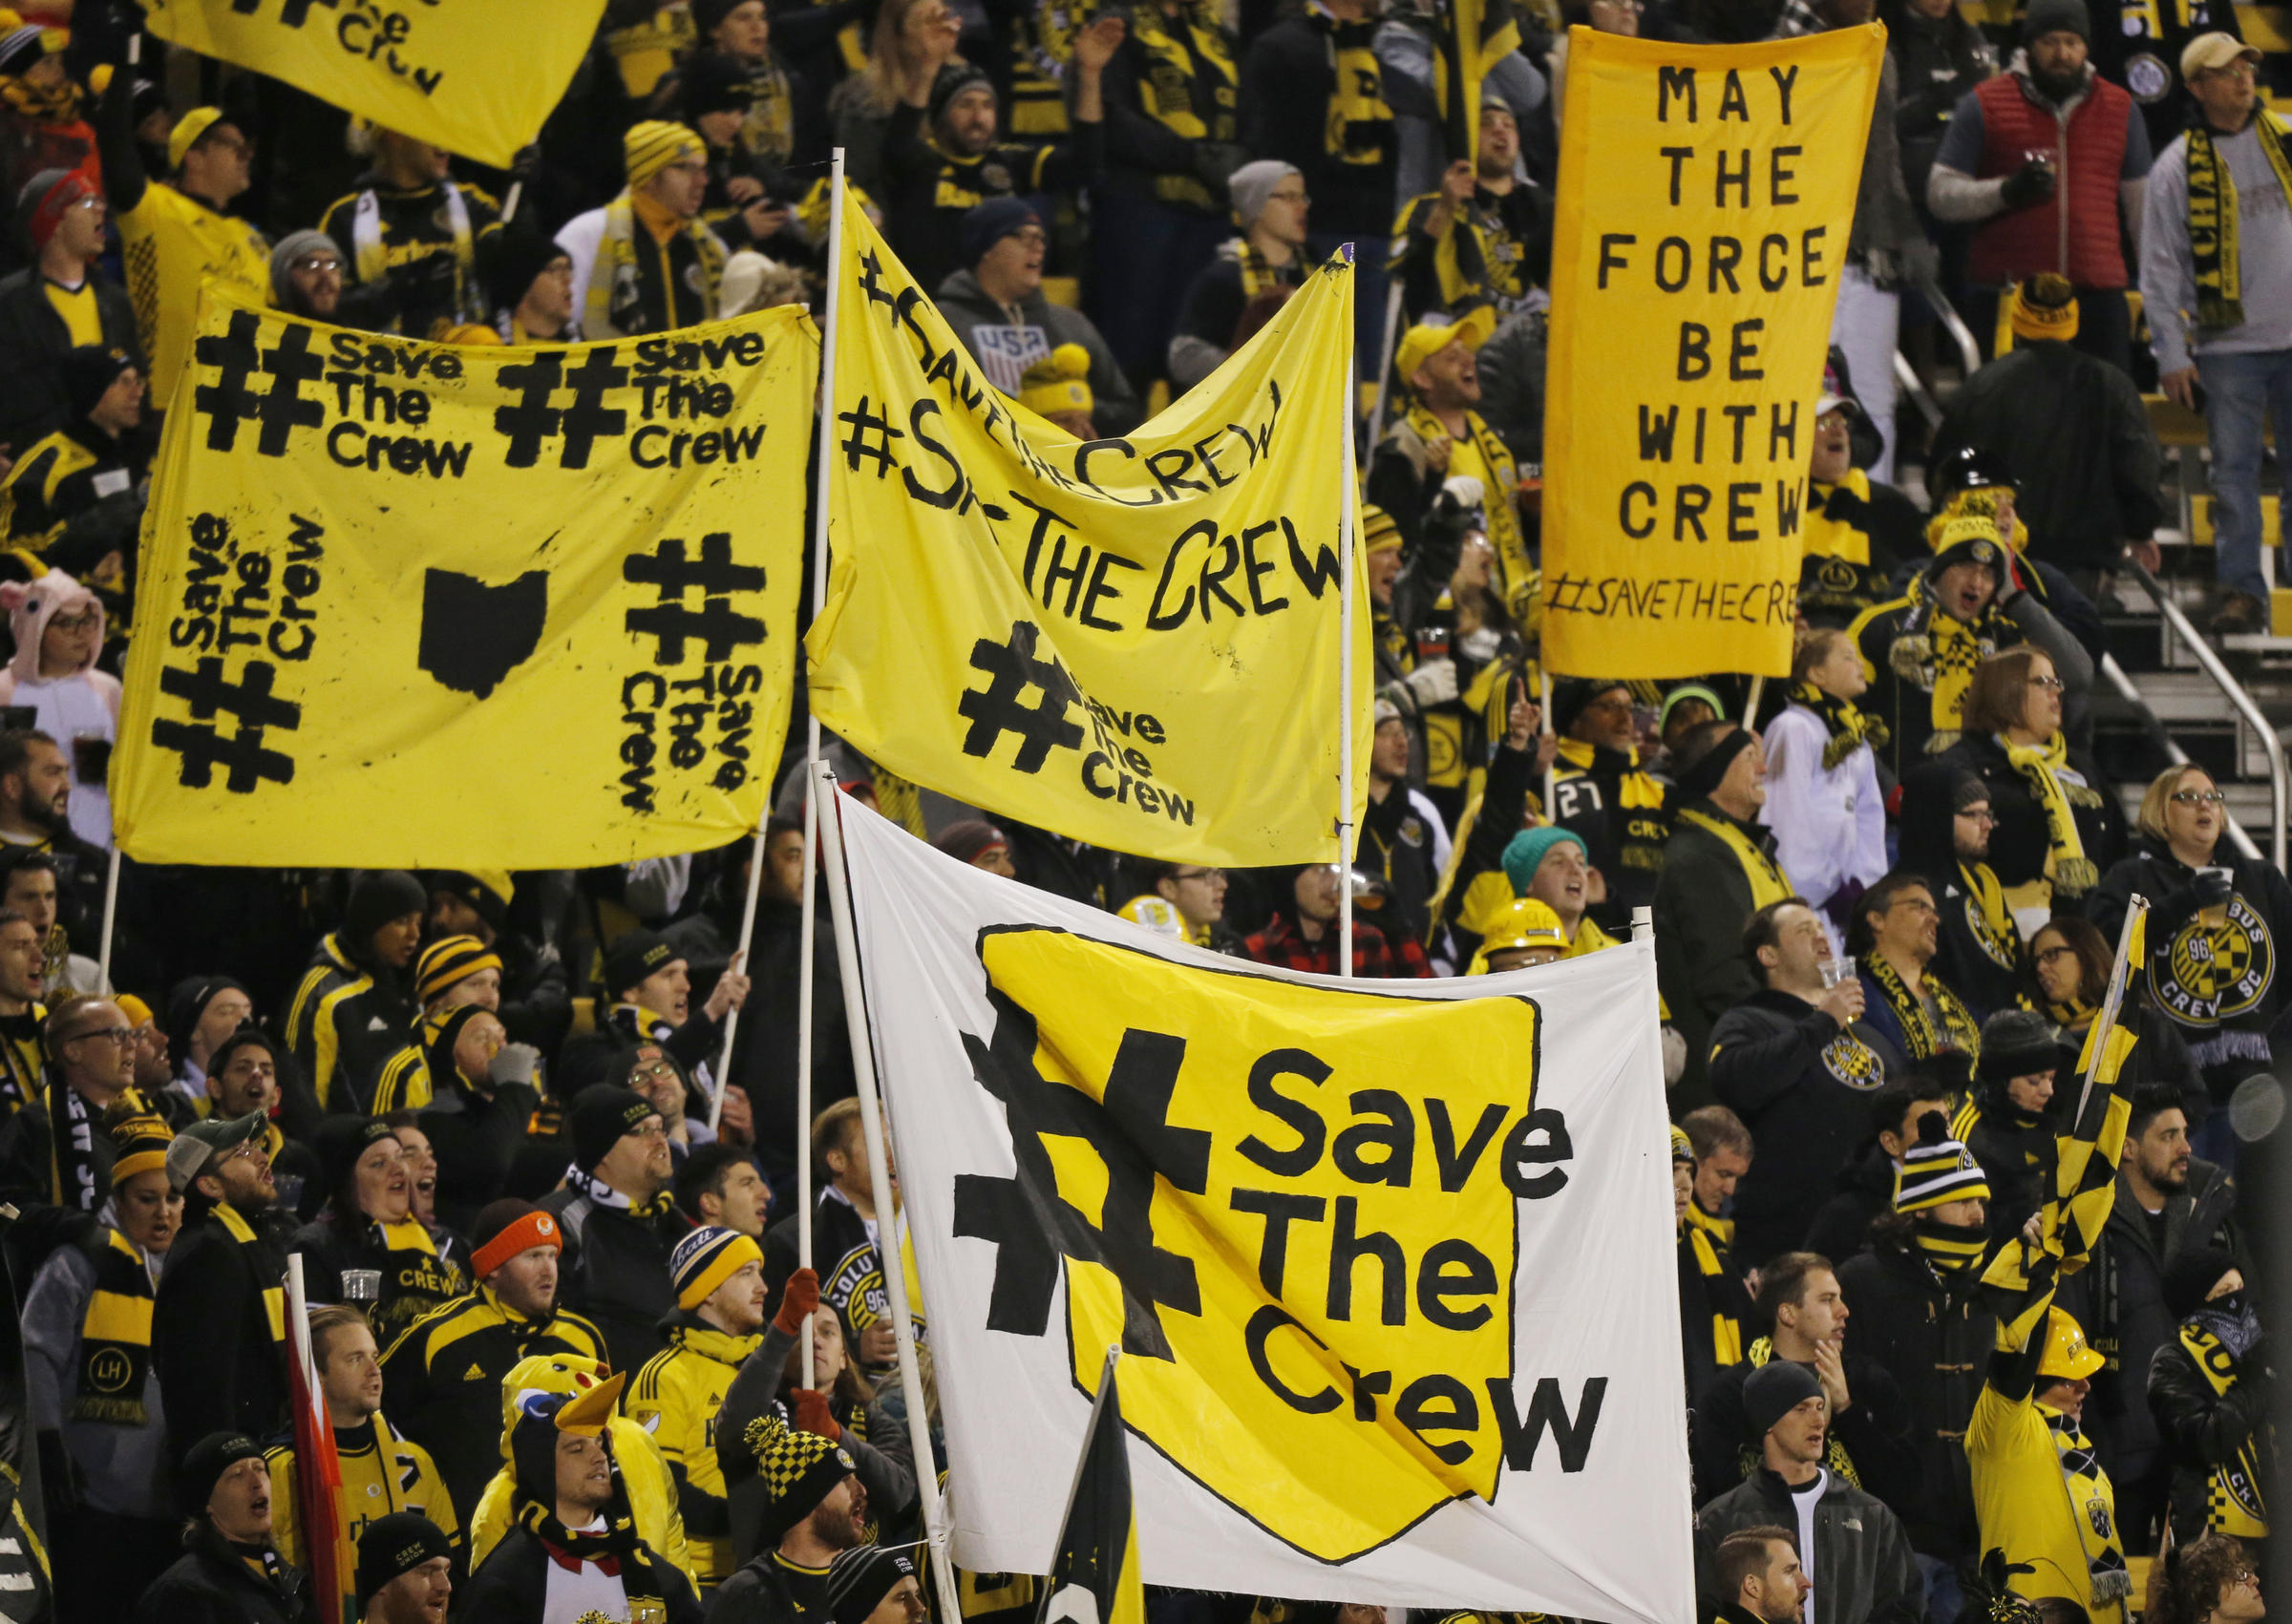 columbus crew  Saved The Crew: Browns Owners Plan To Purchase Columbus Crew | WOSU ...